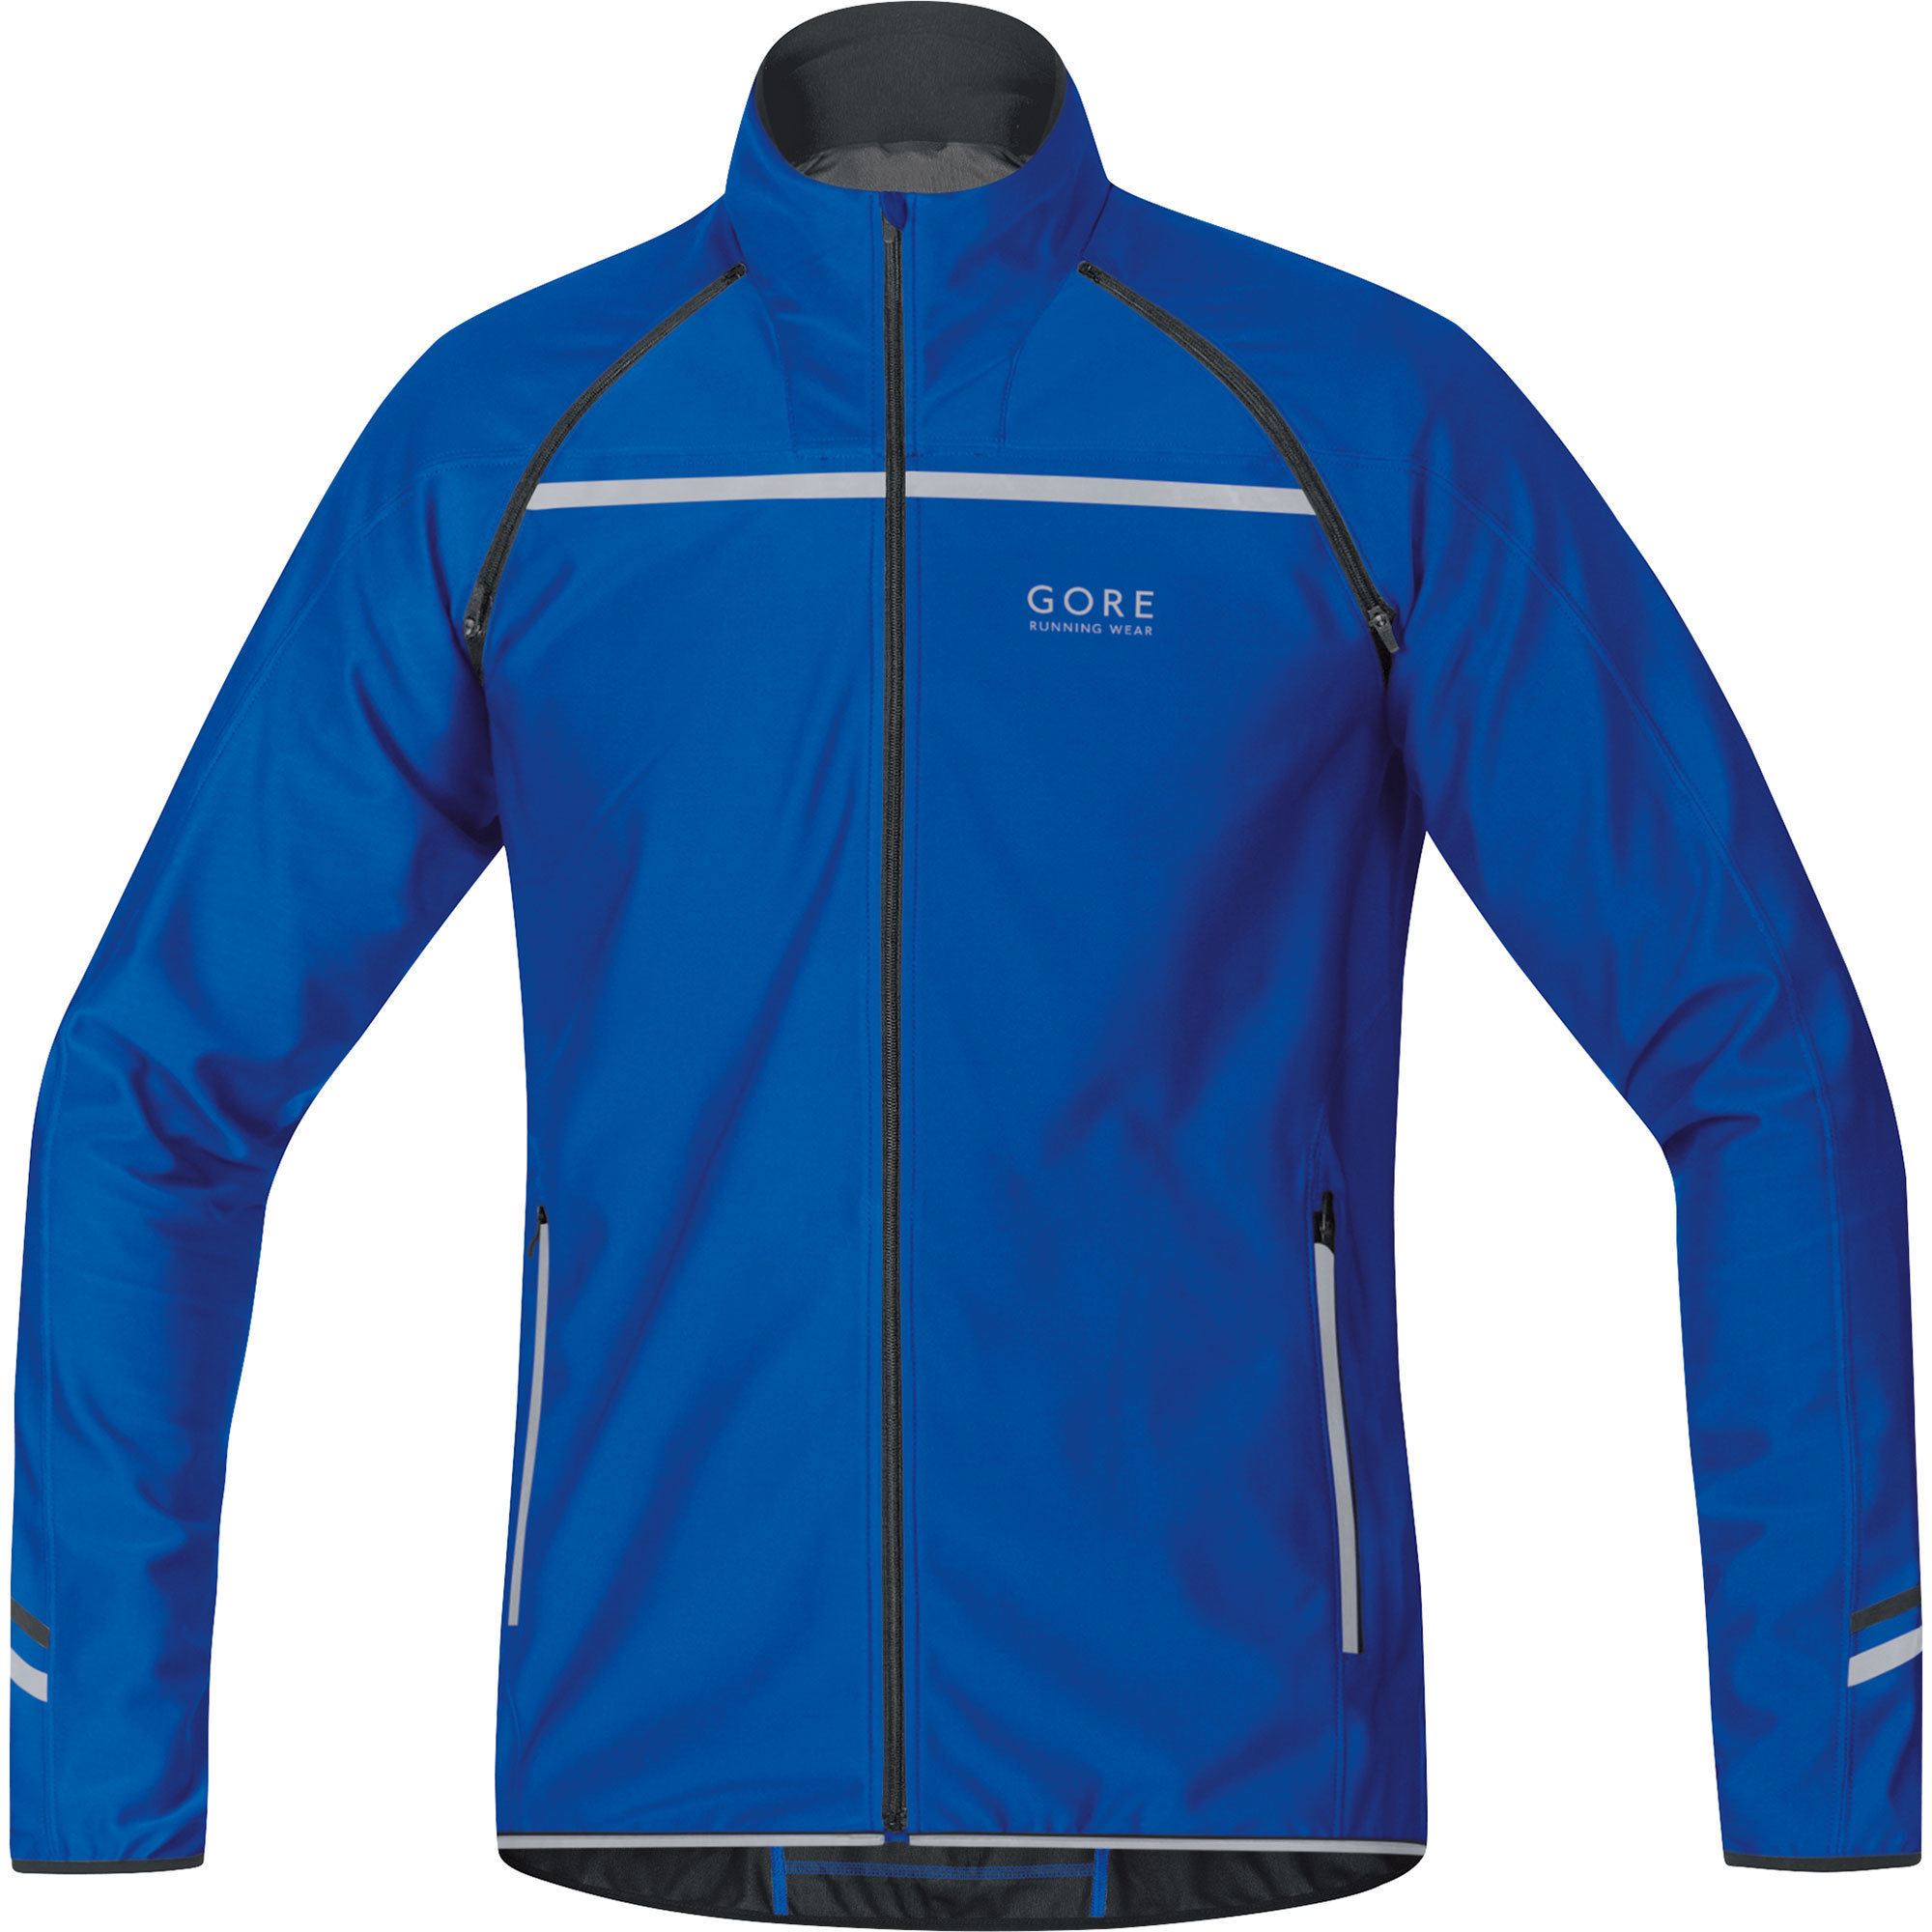 Gore Mythos 2.0 WS SO ZO Light Jacket in Blau